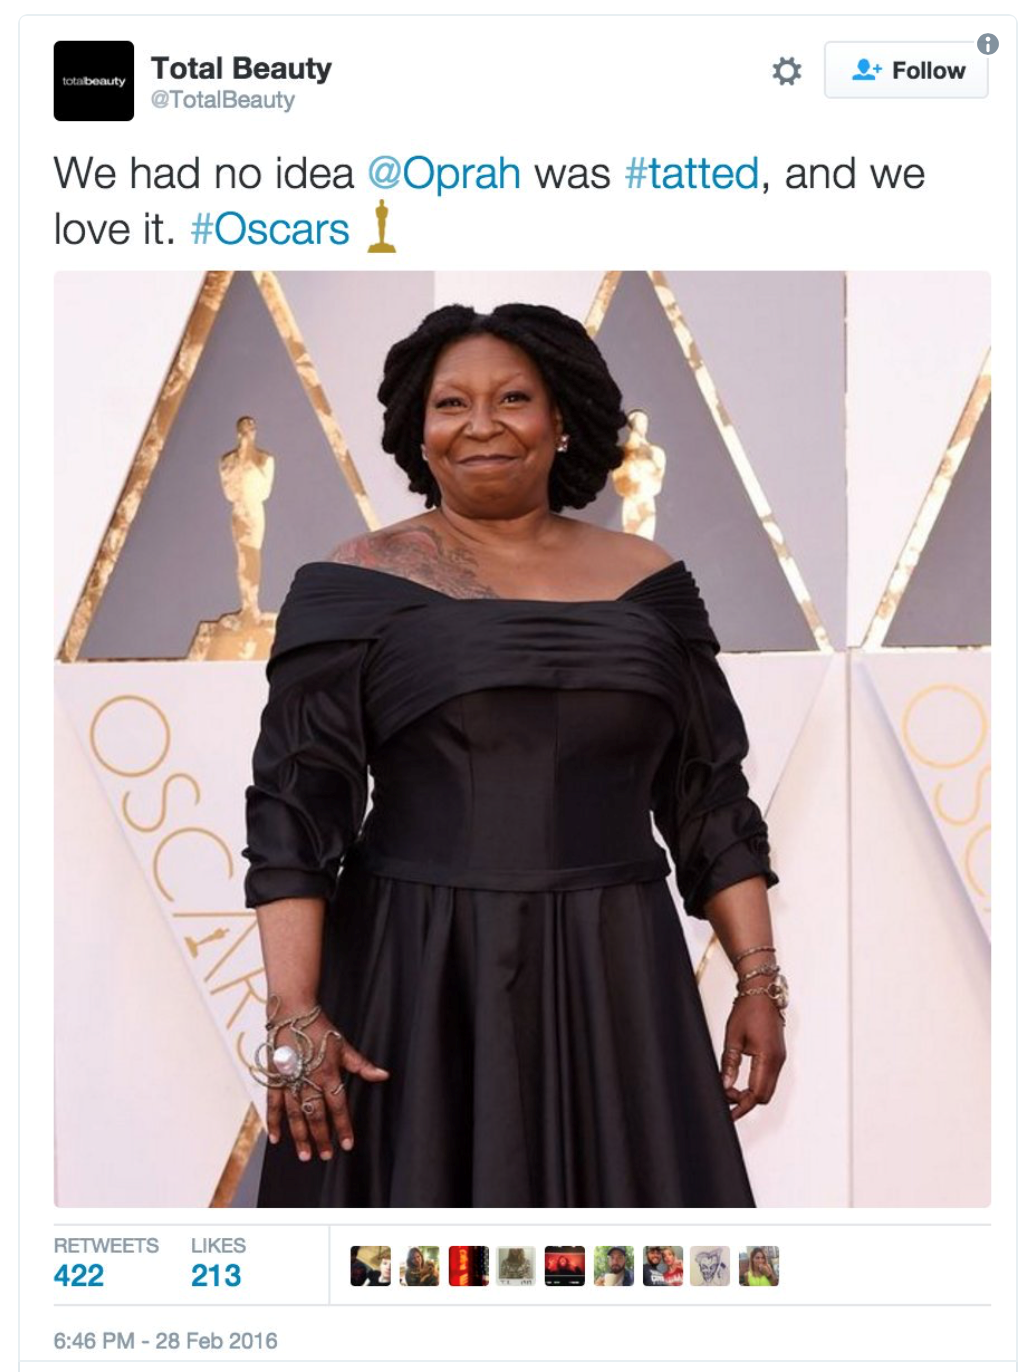 Hire an intern for Social Media and get #Thats-Not-Oprah